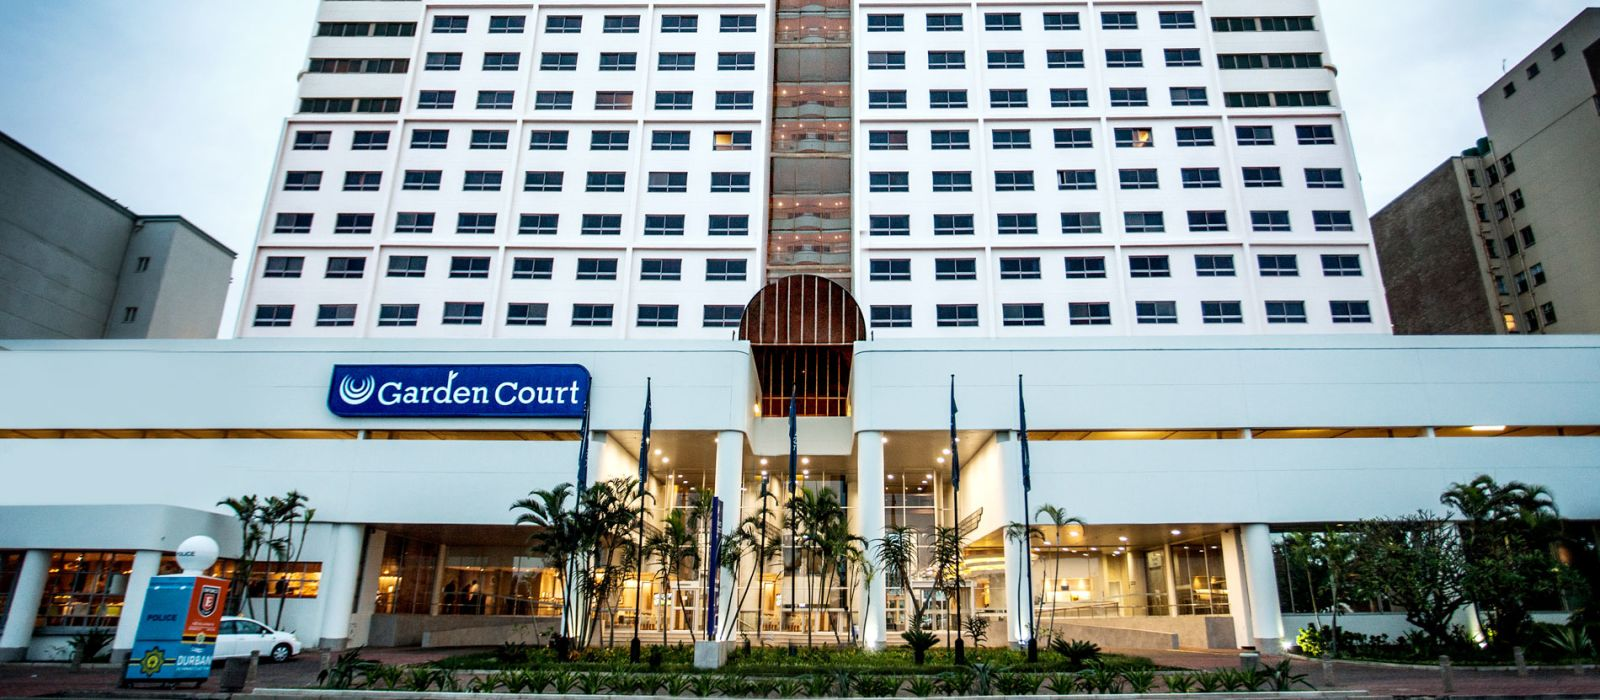 Hotel Garden Court Marine Parade South Africa